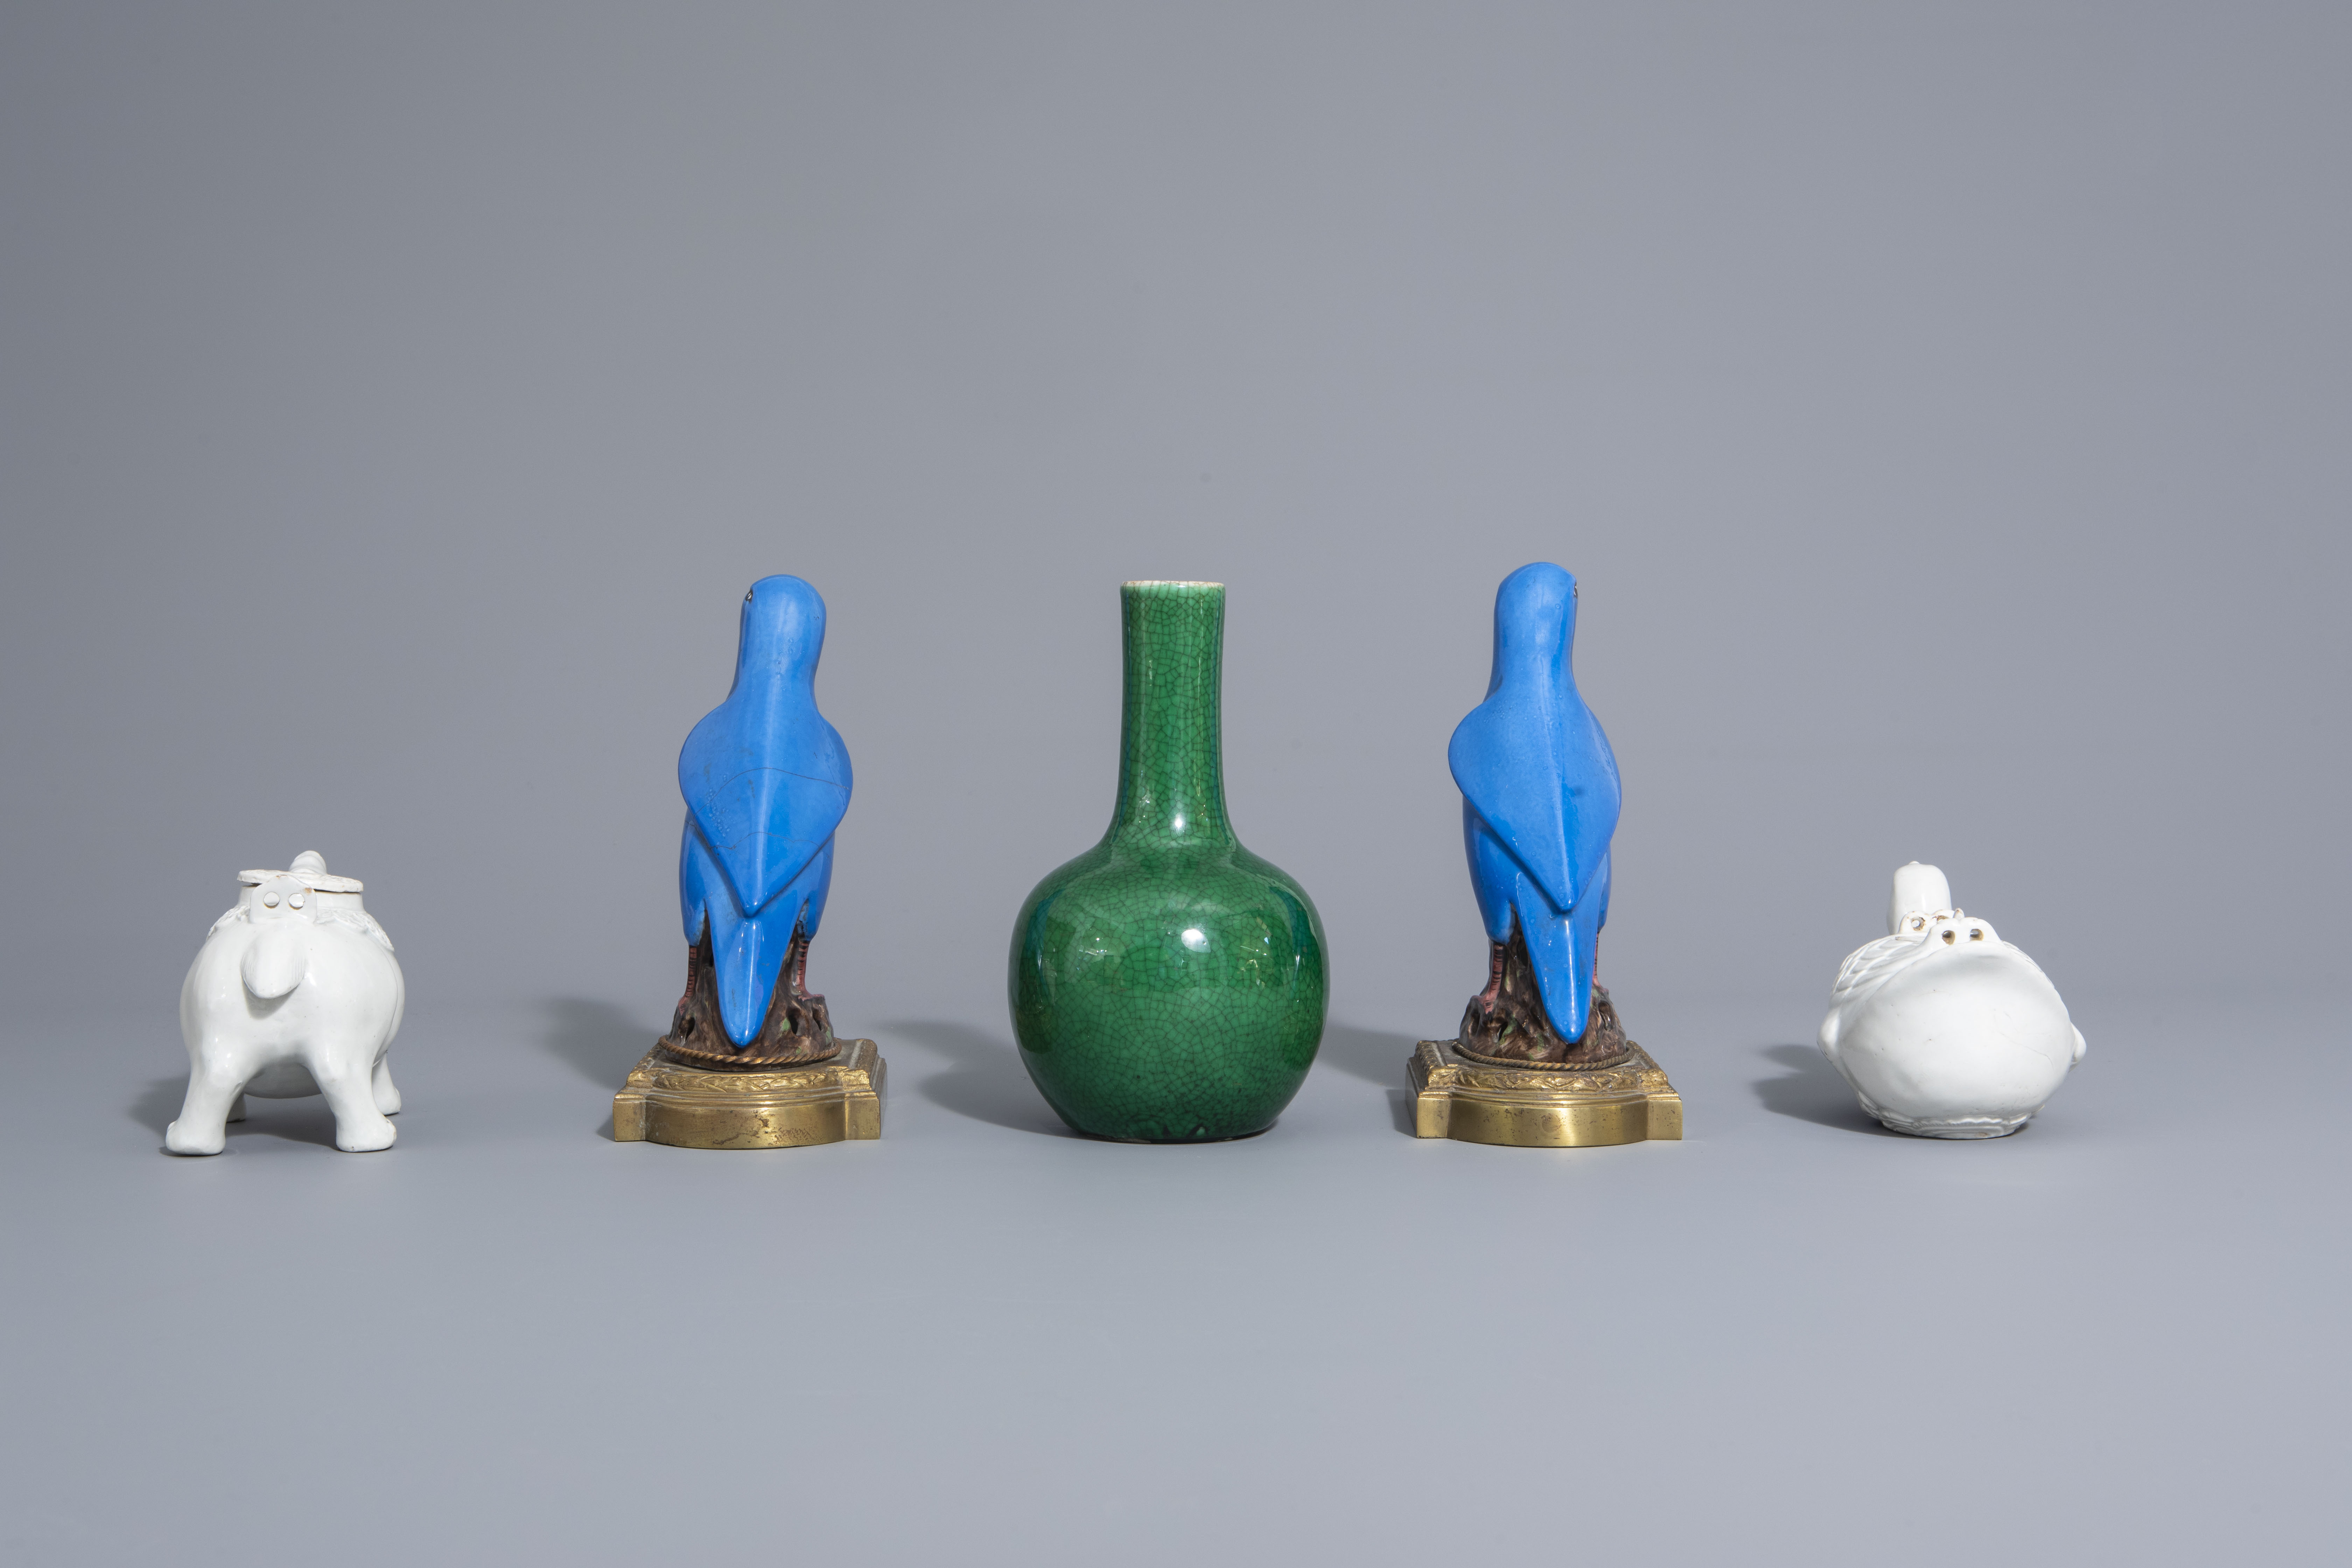 A Chinese monochrome green vase, 2 blanc de Chine teapots & a pair of polychrome birds, 19th/20th C - Image 3 of 7